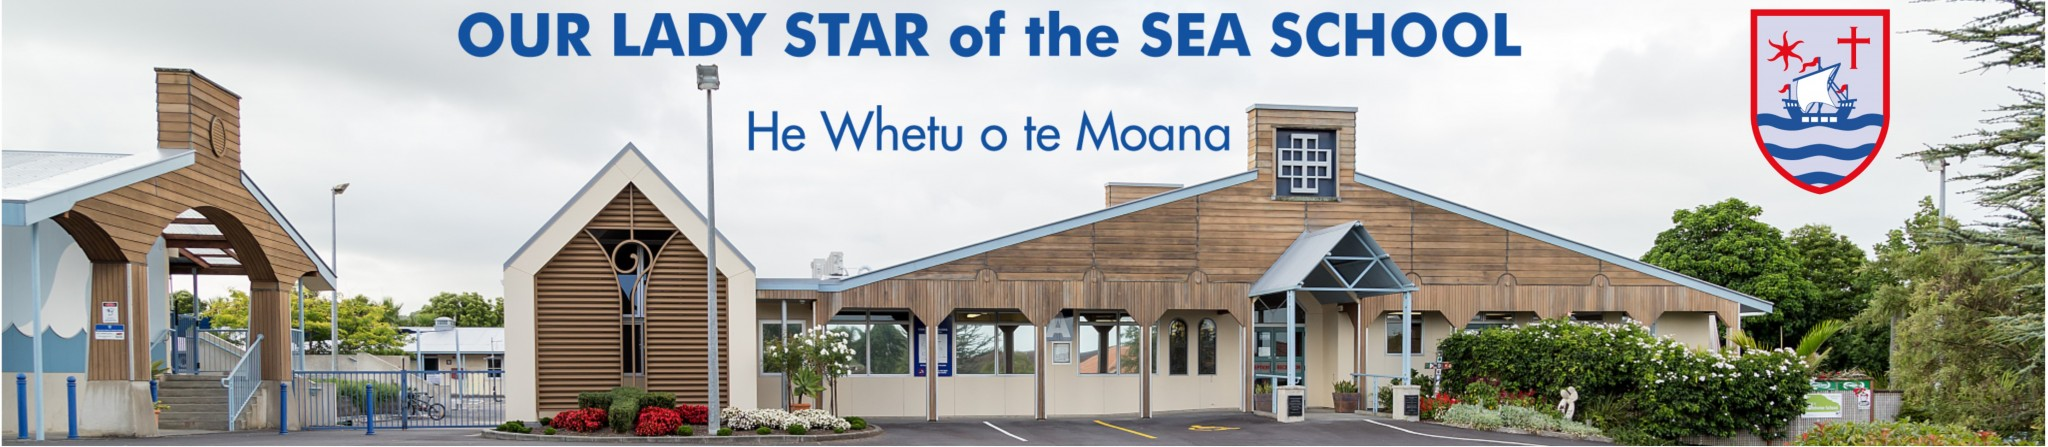 Our Lady Star of the Sea School Logo